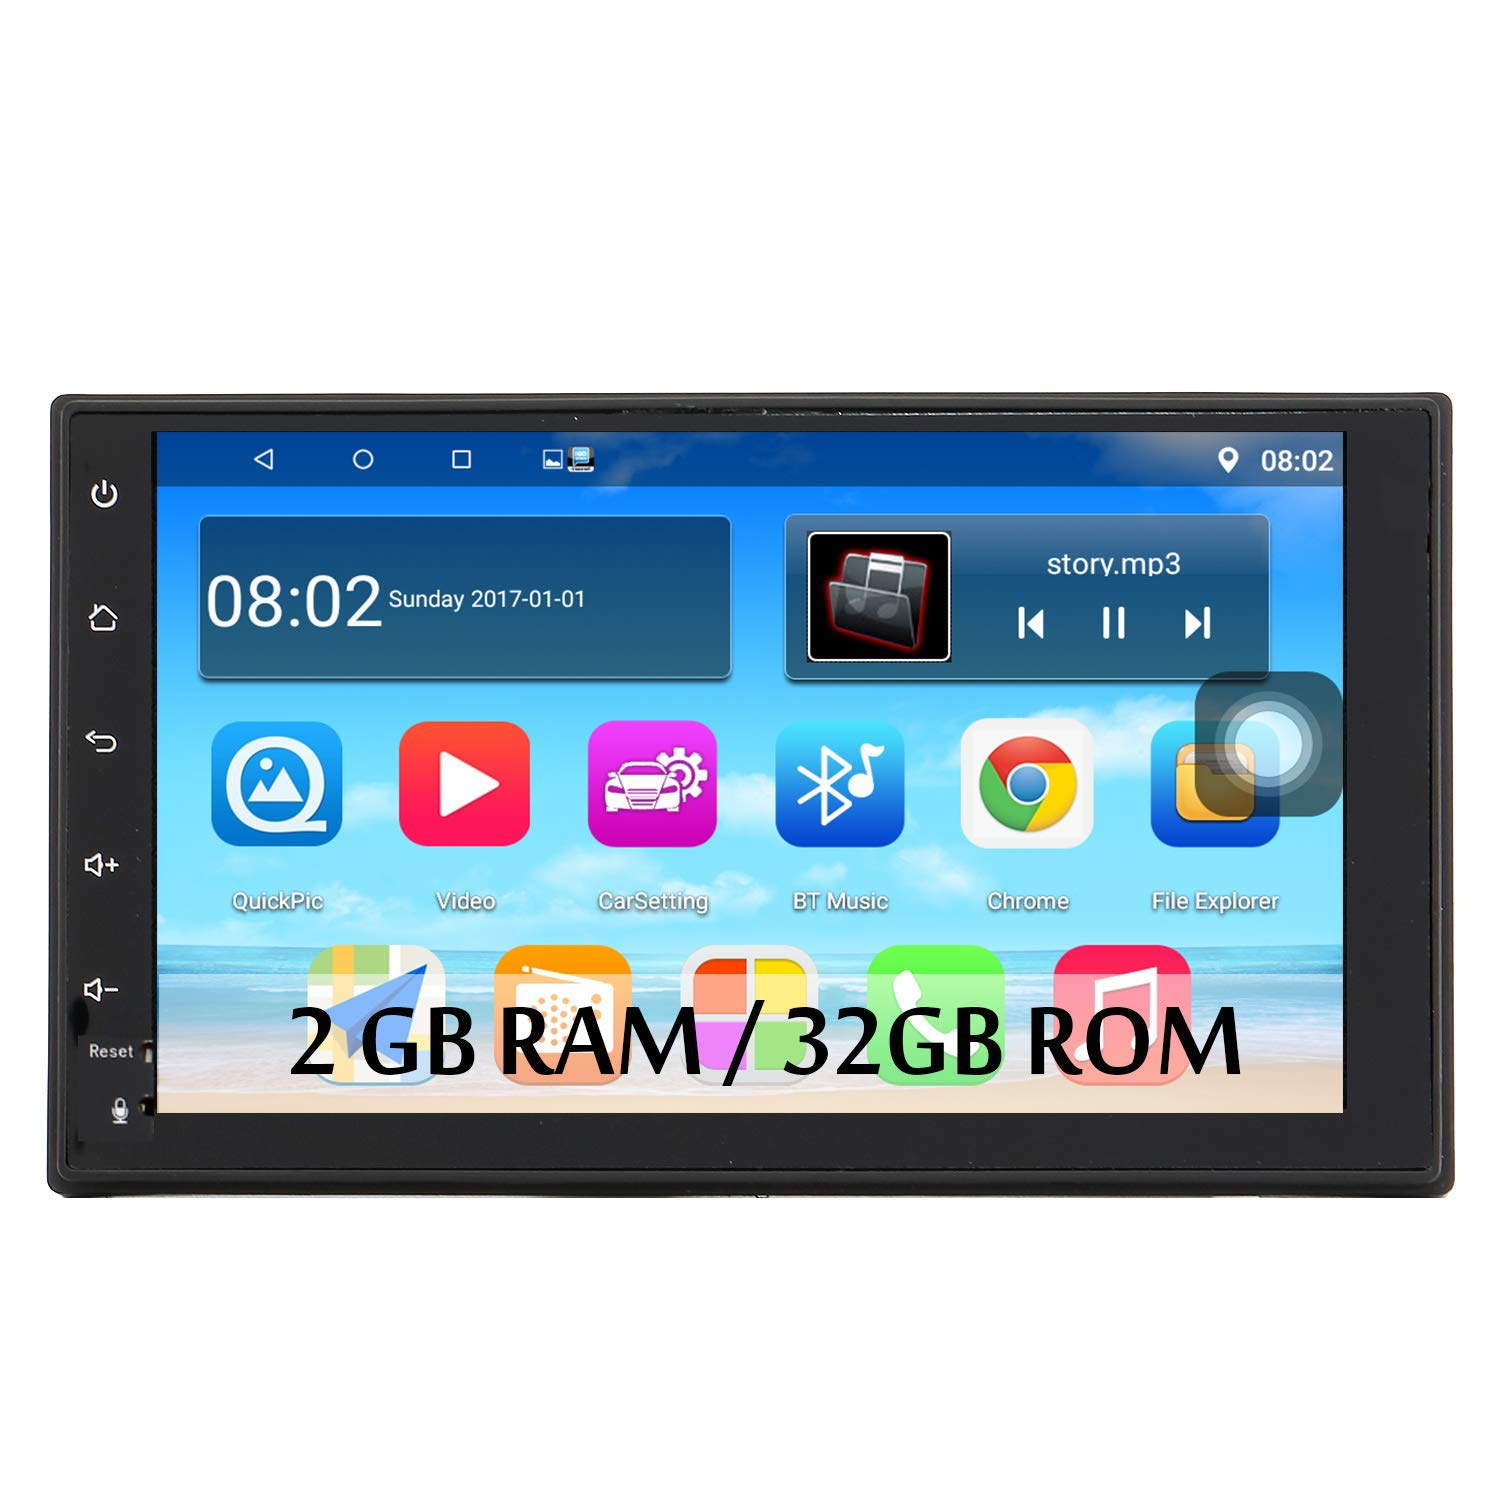 Panlelo S1 Android 2 DIN Universal 7 Pulgadas Car Stereo Touchscreen Navegación GPS Am/FM Radio 1024×600 Quad Core + 16G Car Audio Player WiFi Bluetooth 2USB Puerto Steering Wheel Control